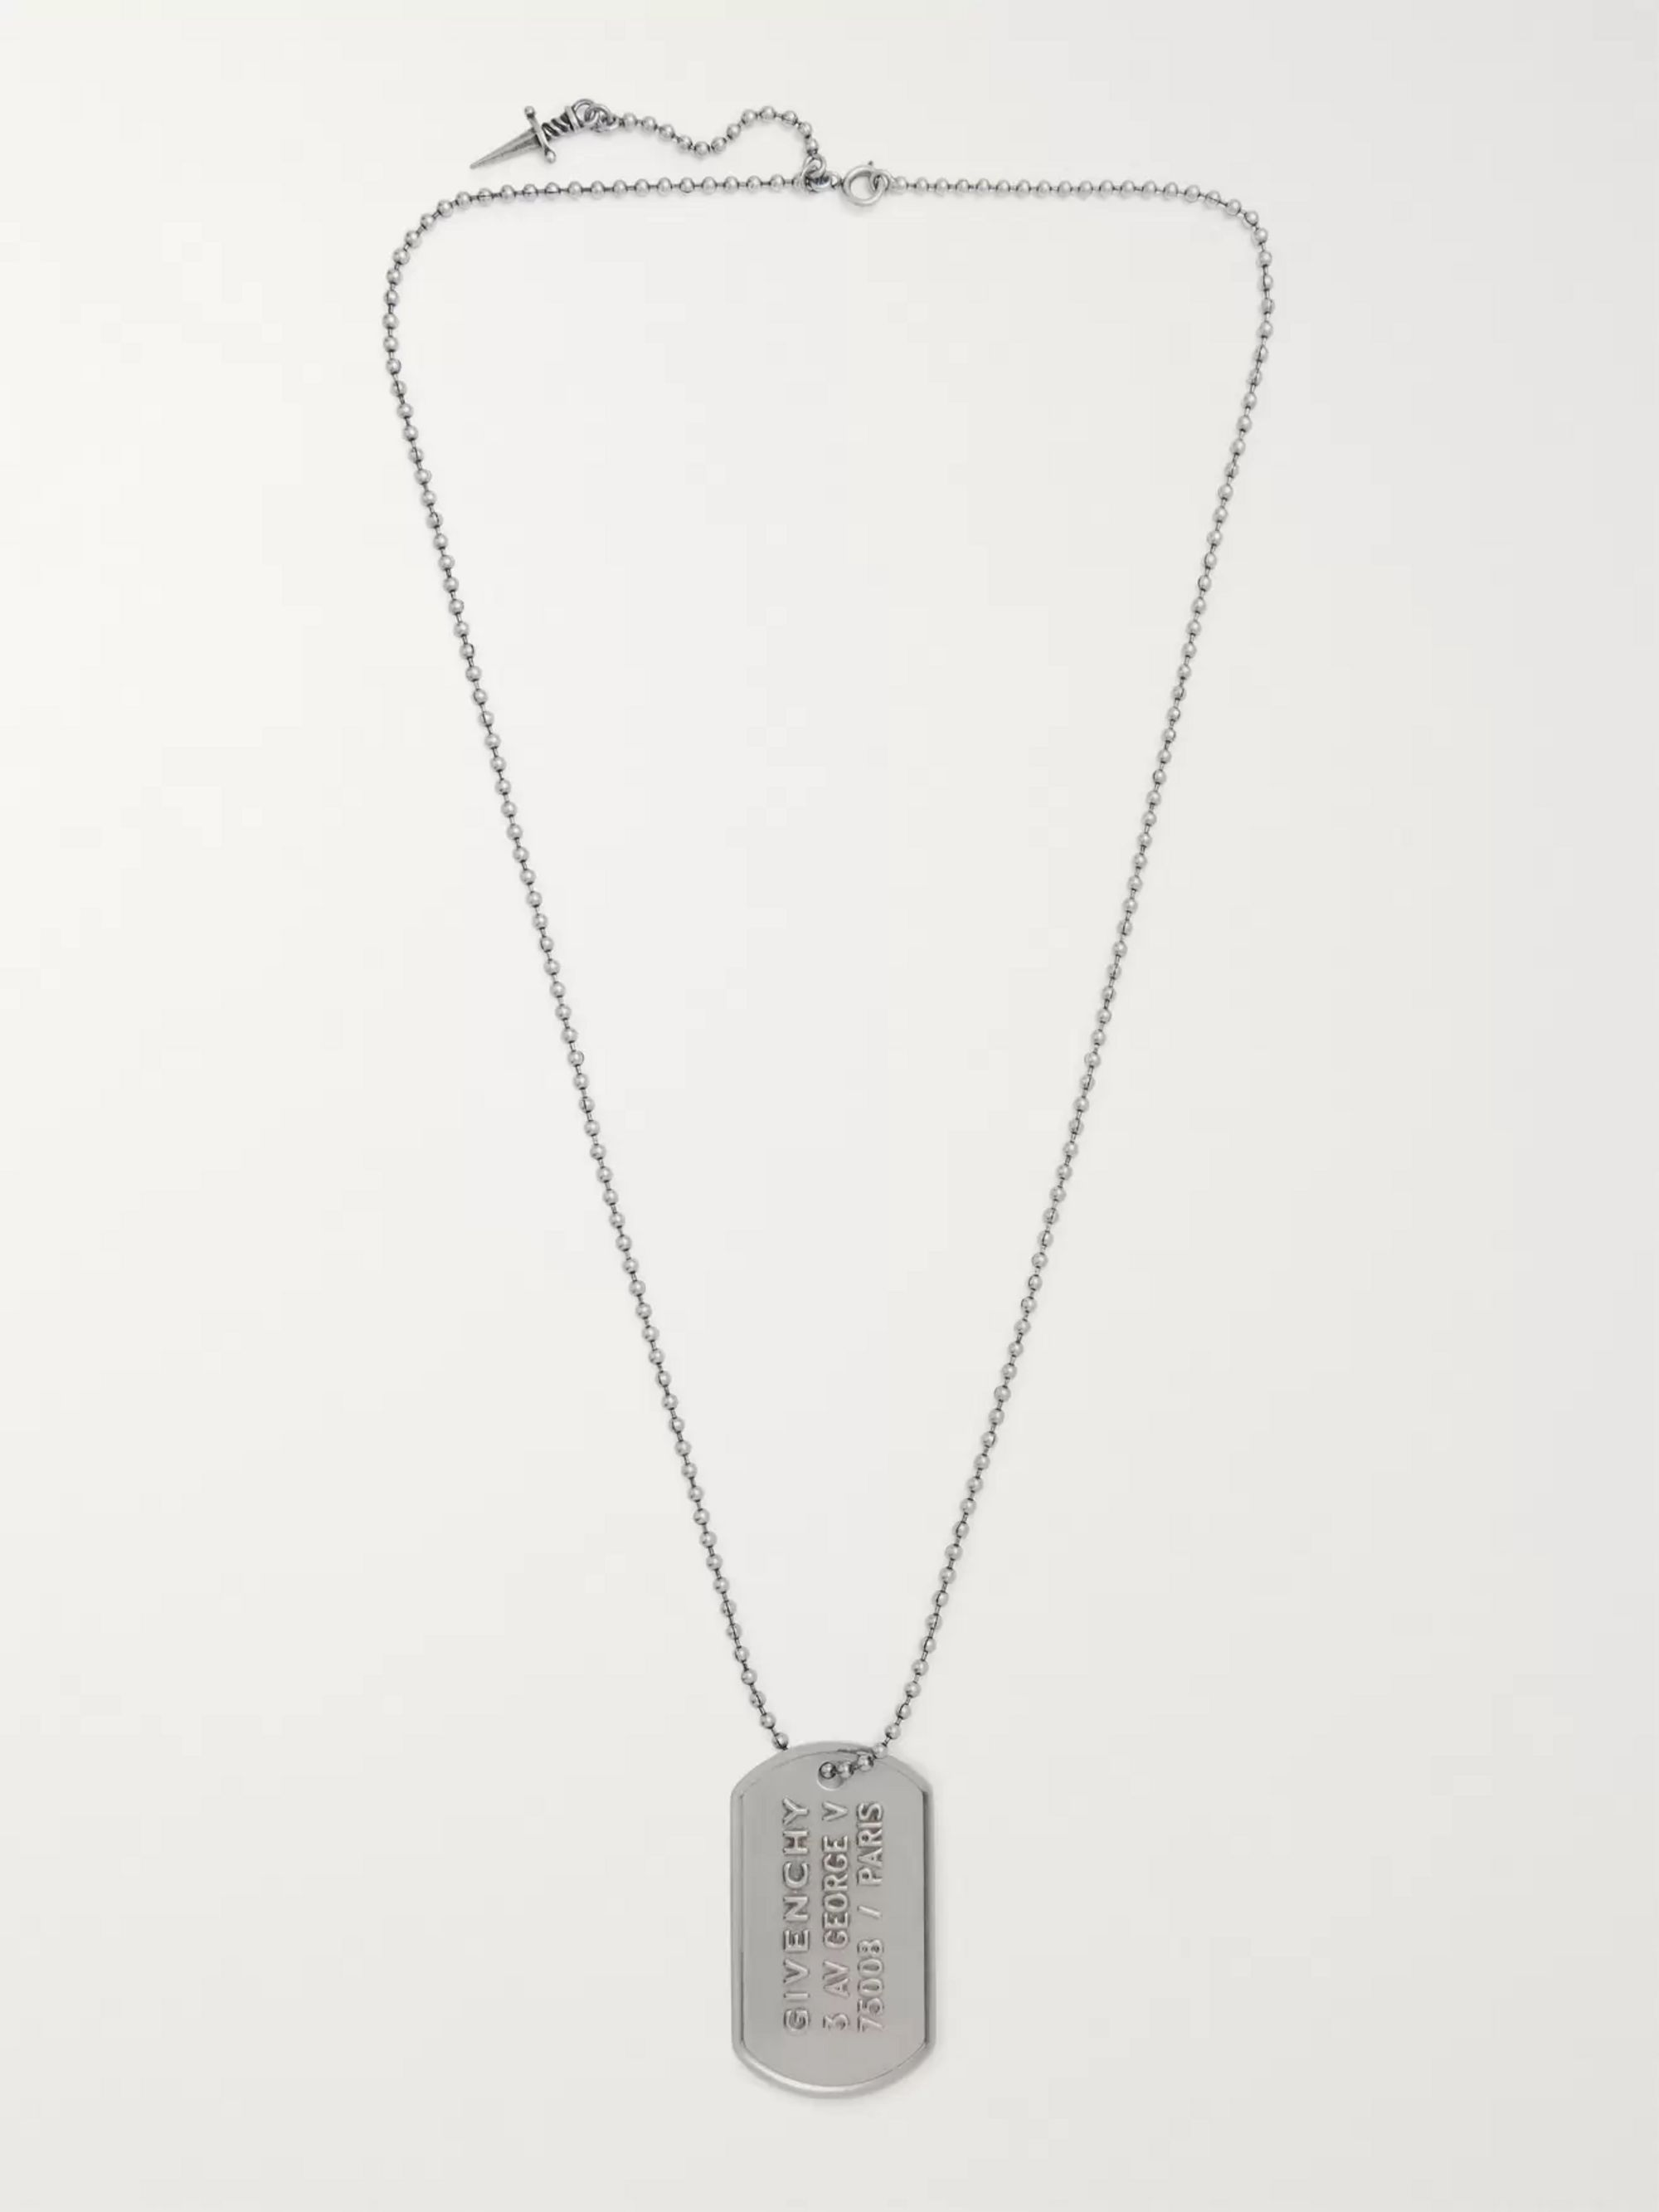 Givenchy Silver-Tone Necklace